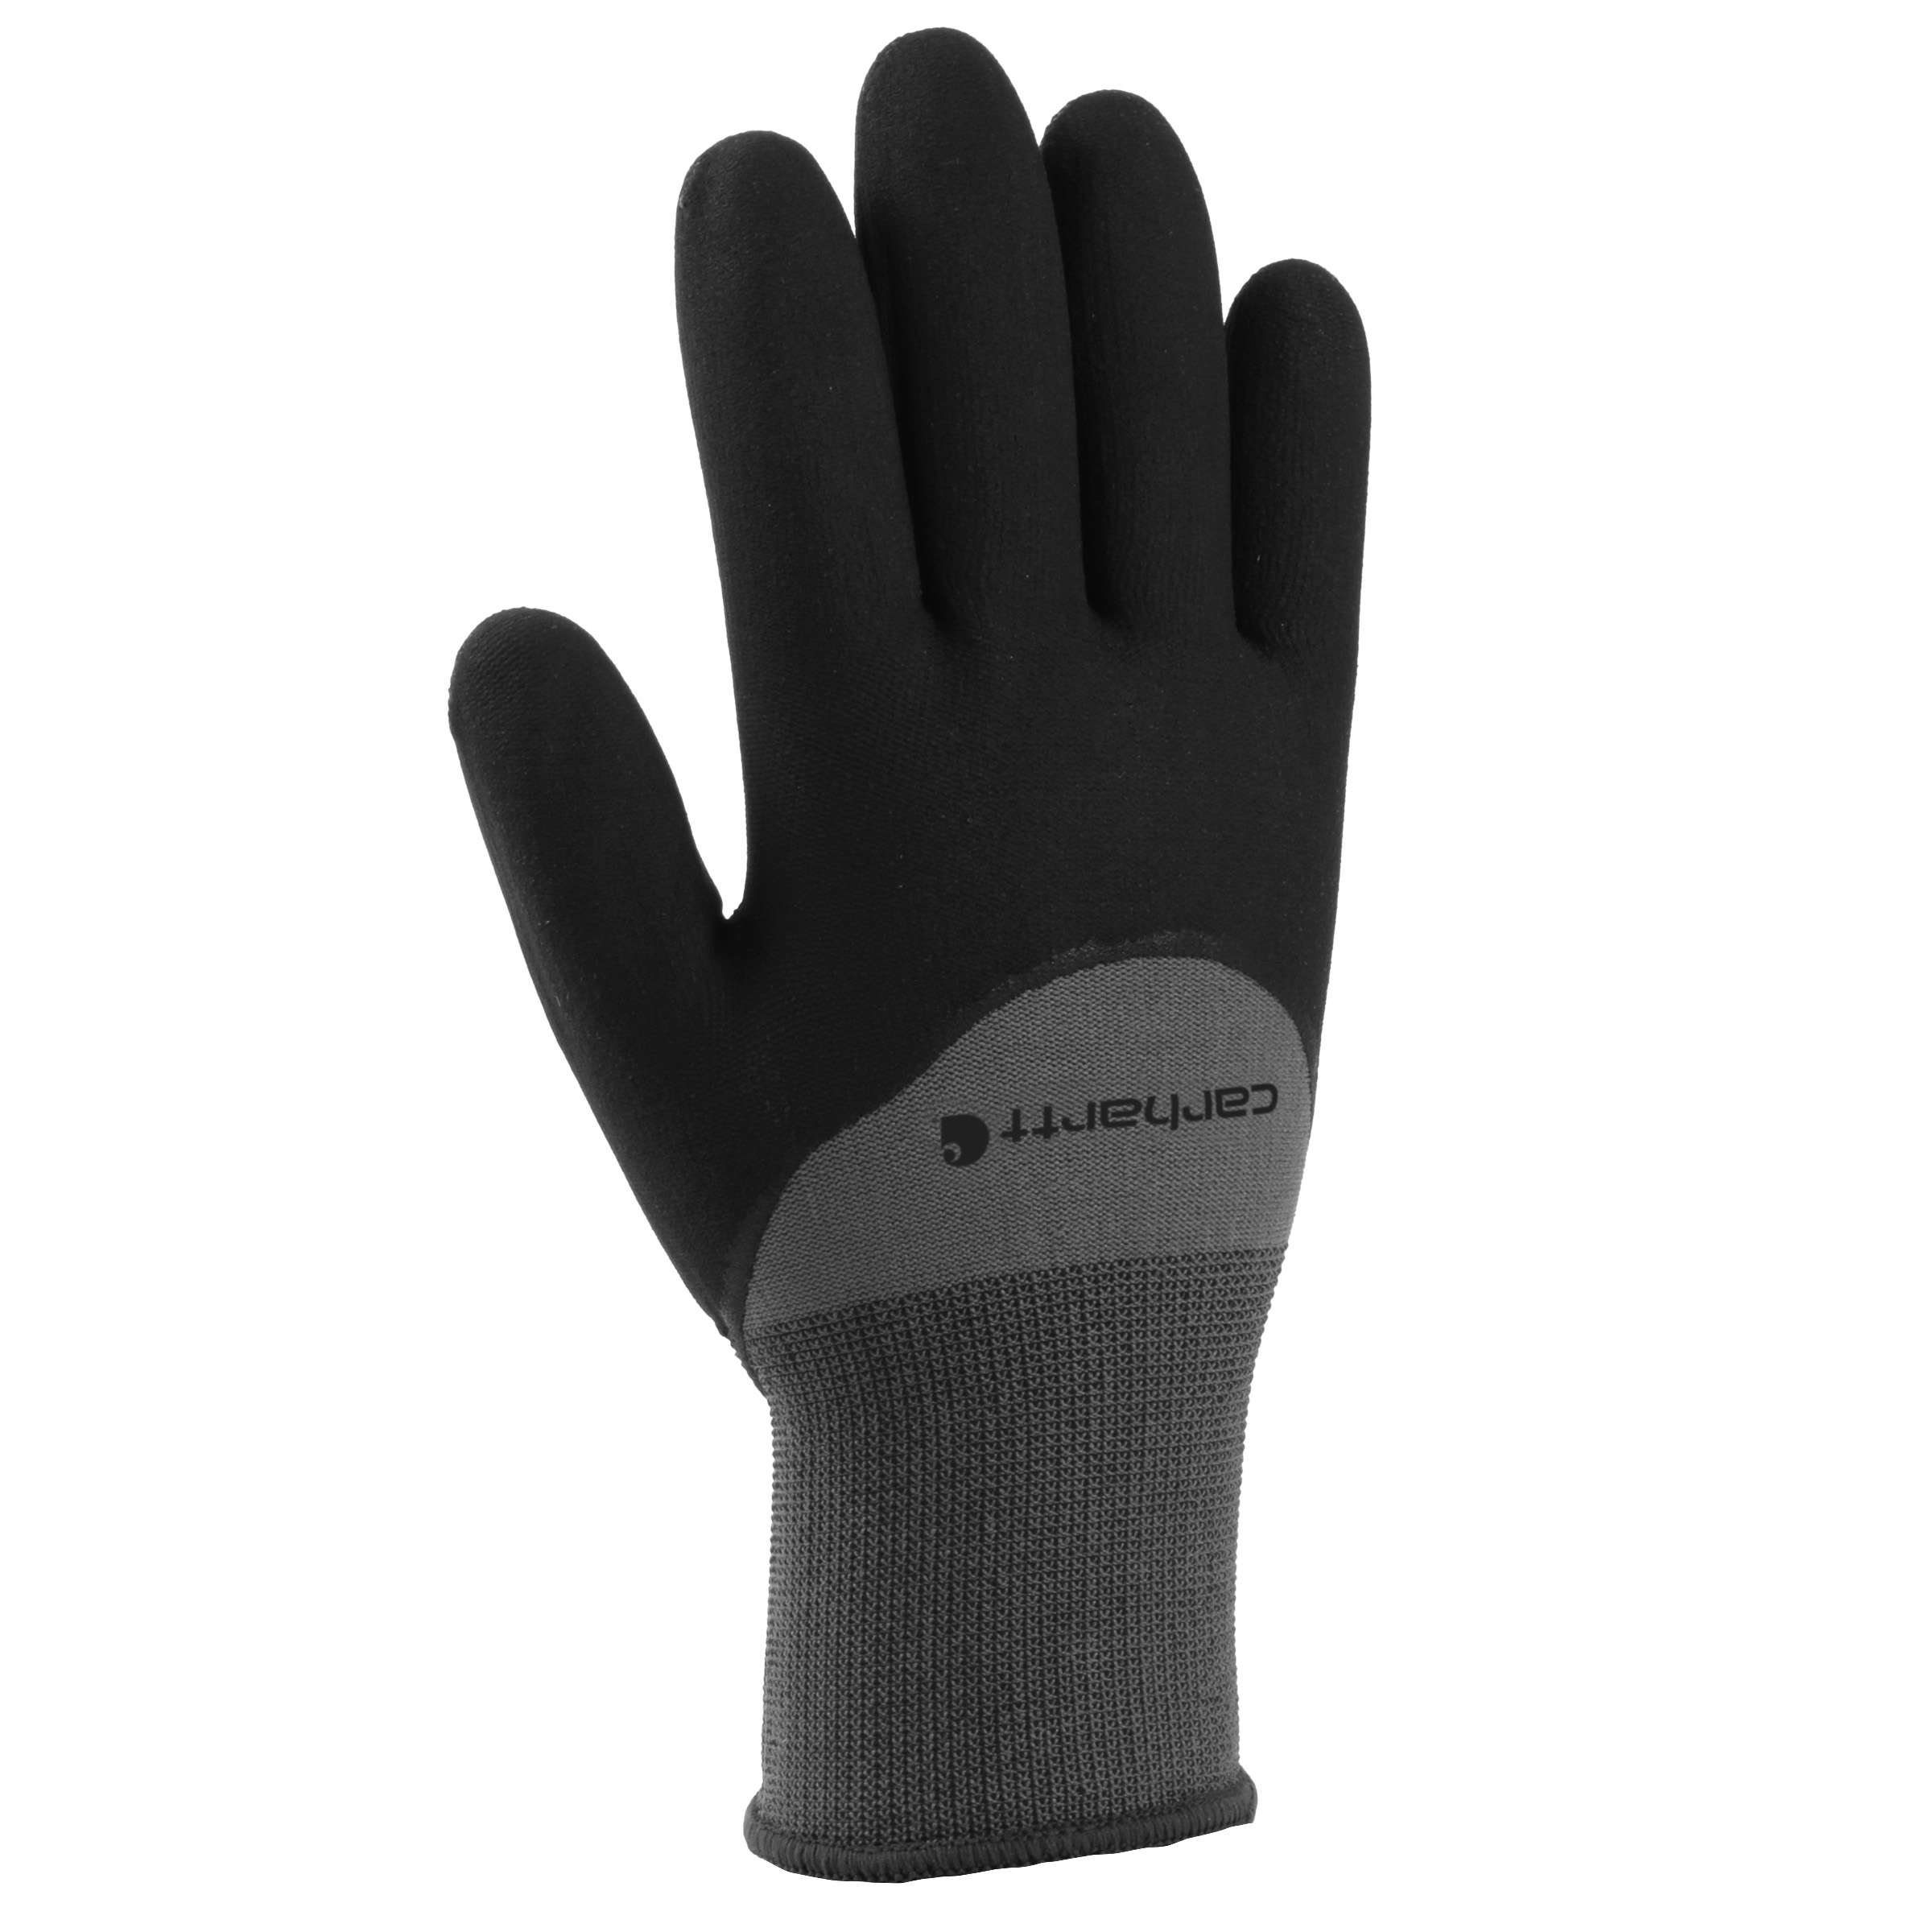 Carhartt Thermal Full-coverage Nitrile Grip Glove